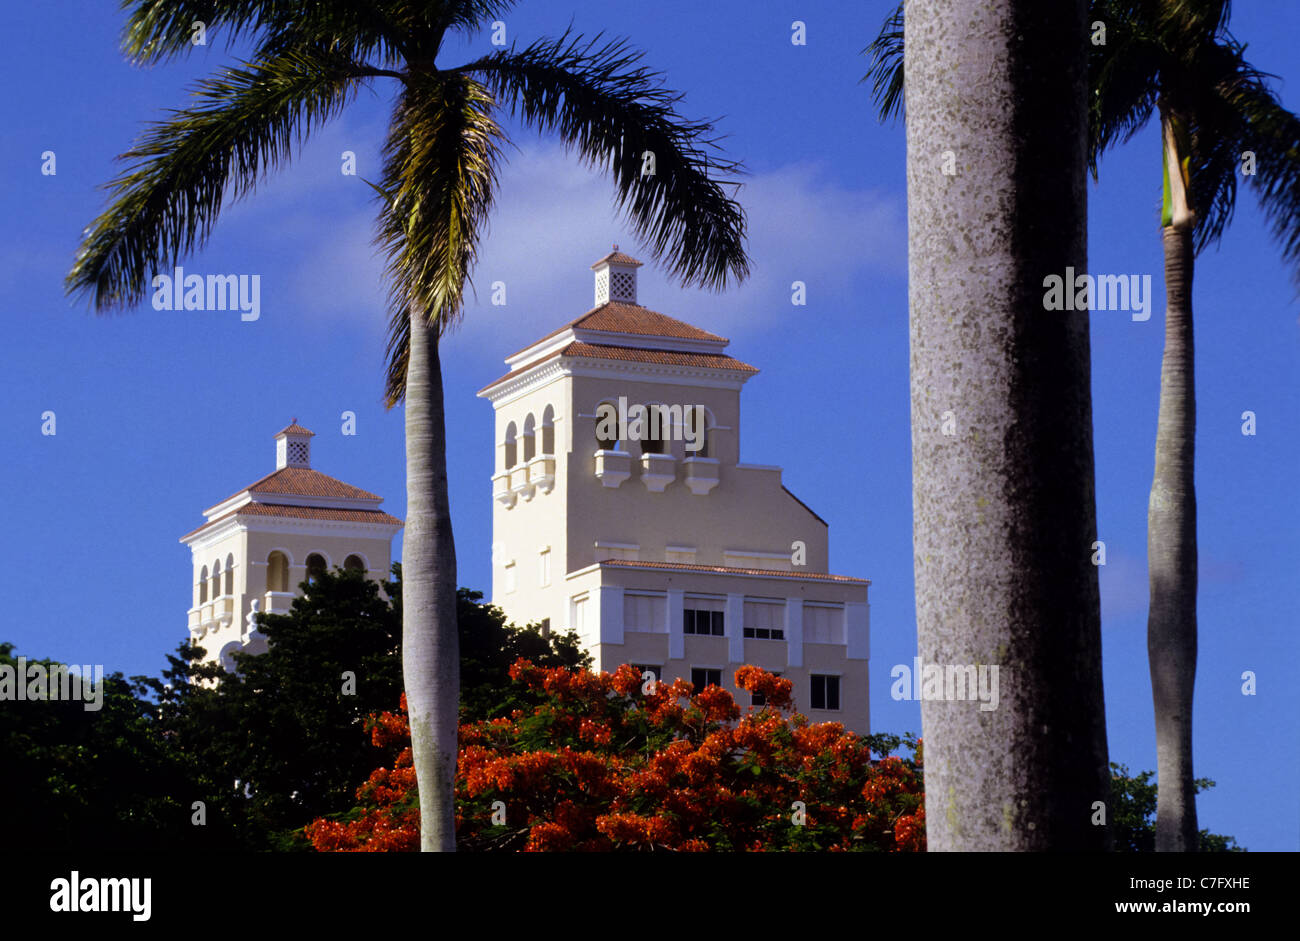 Luxury hotel between palm trees in Florida, USA - Stock Image